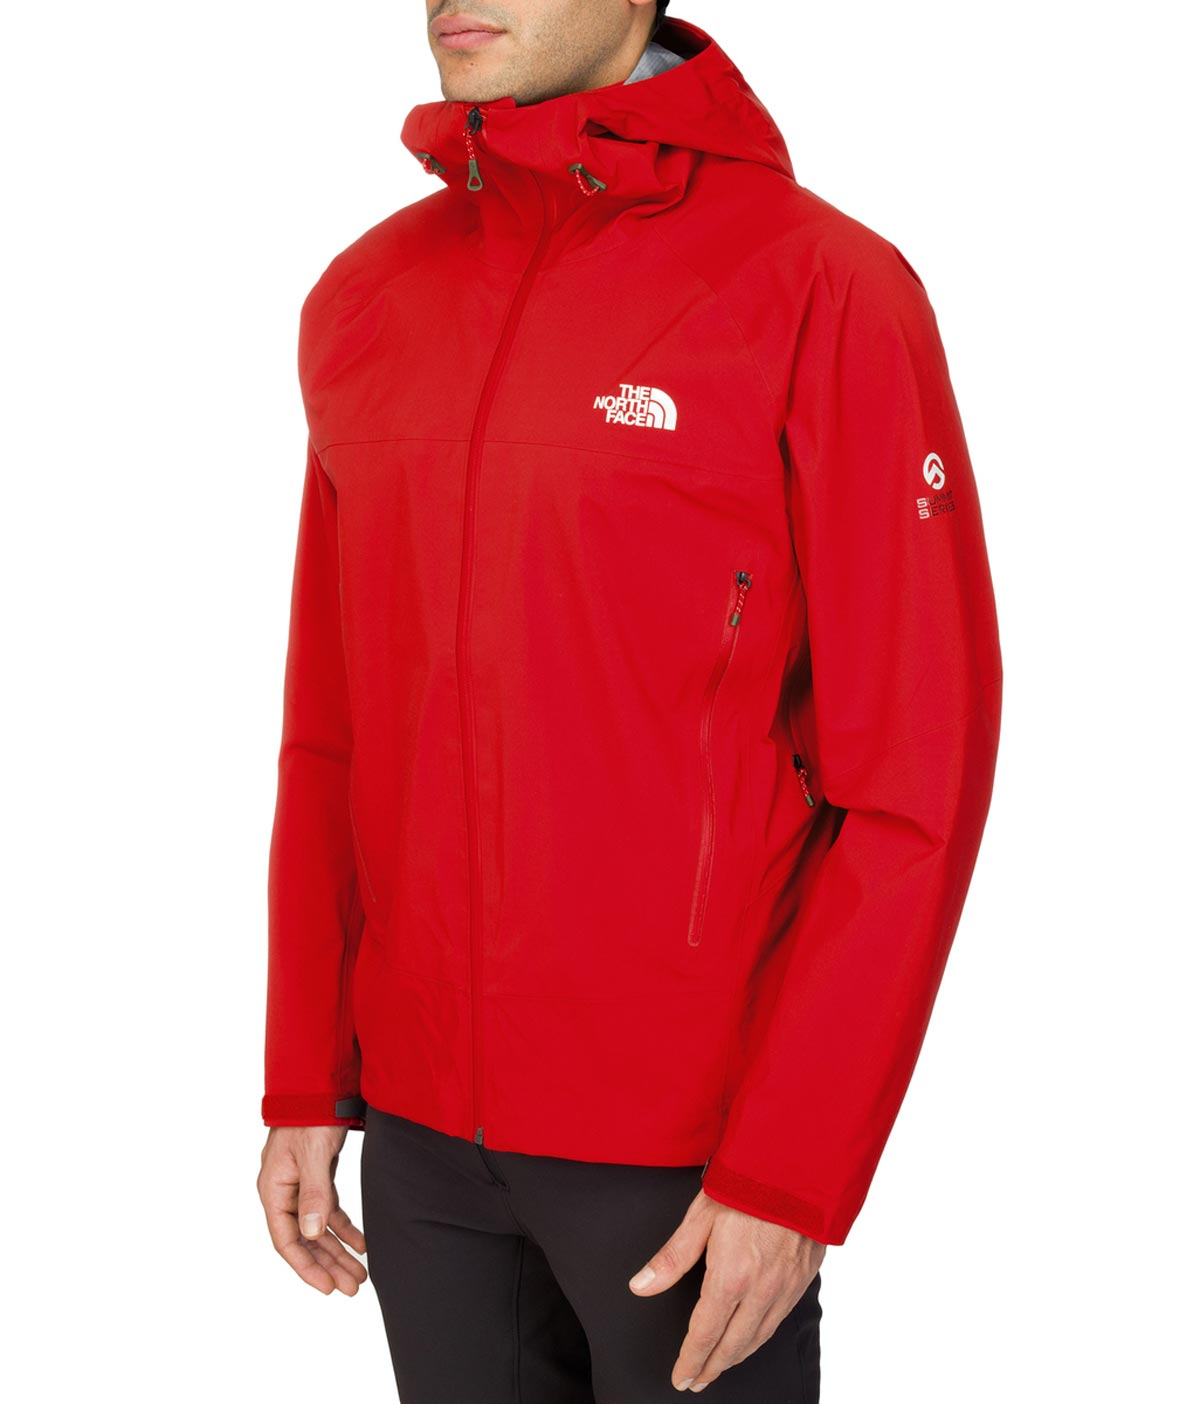 Coquille The North face